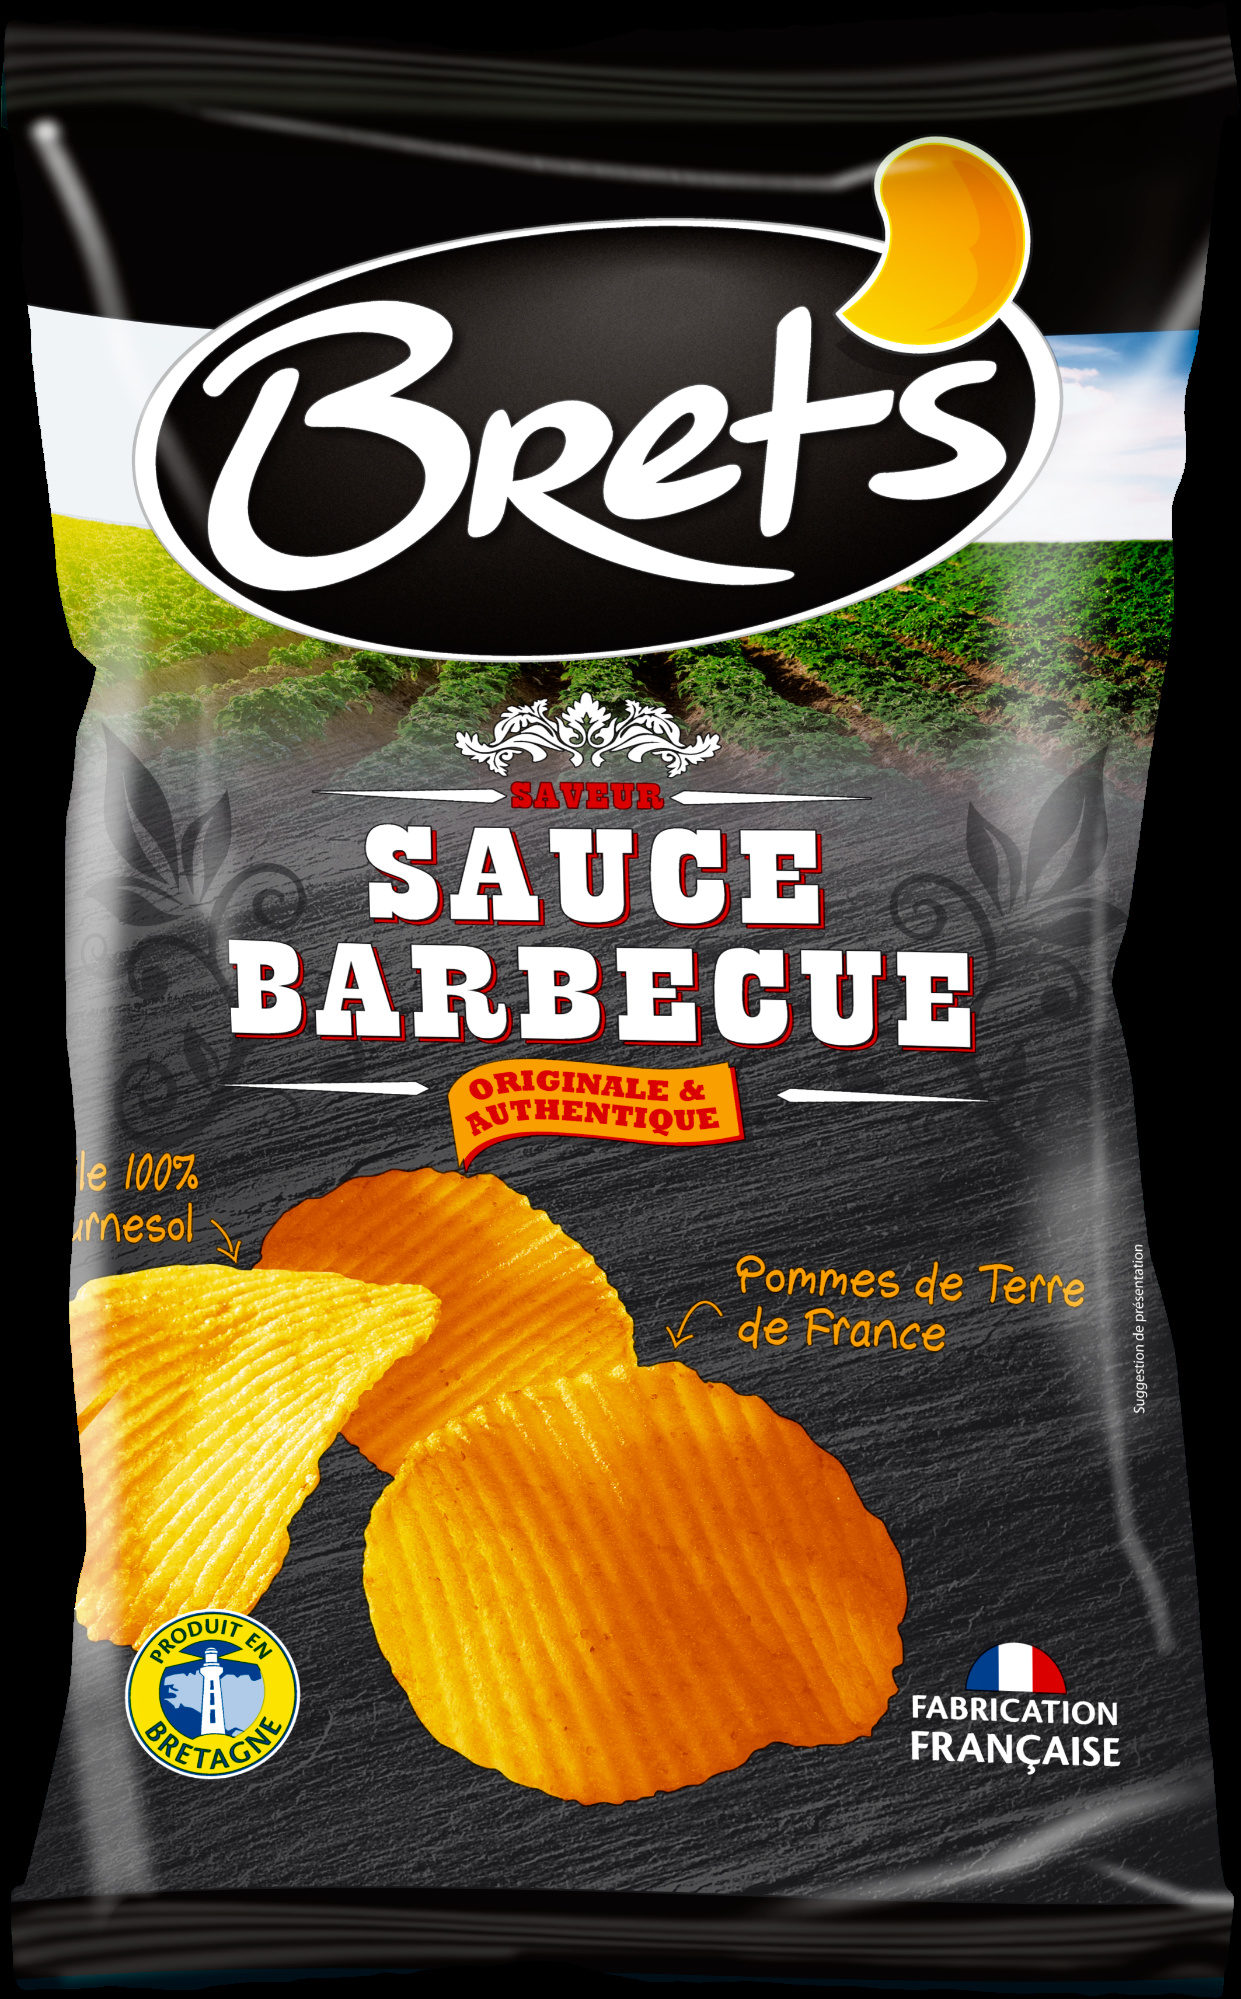 Chips saveur barbecue - Product - fr